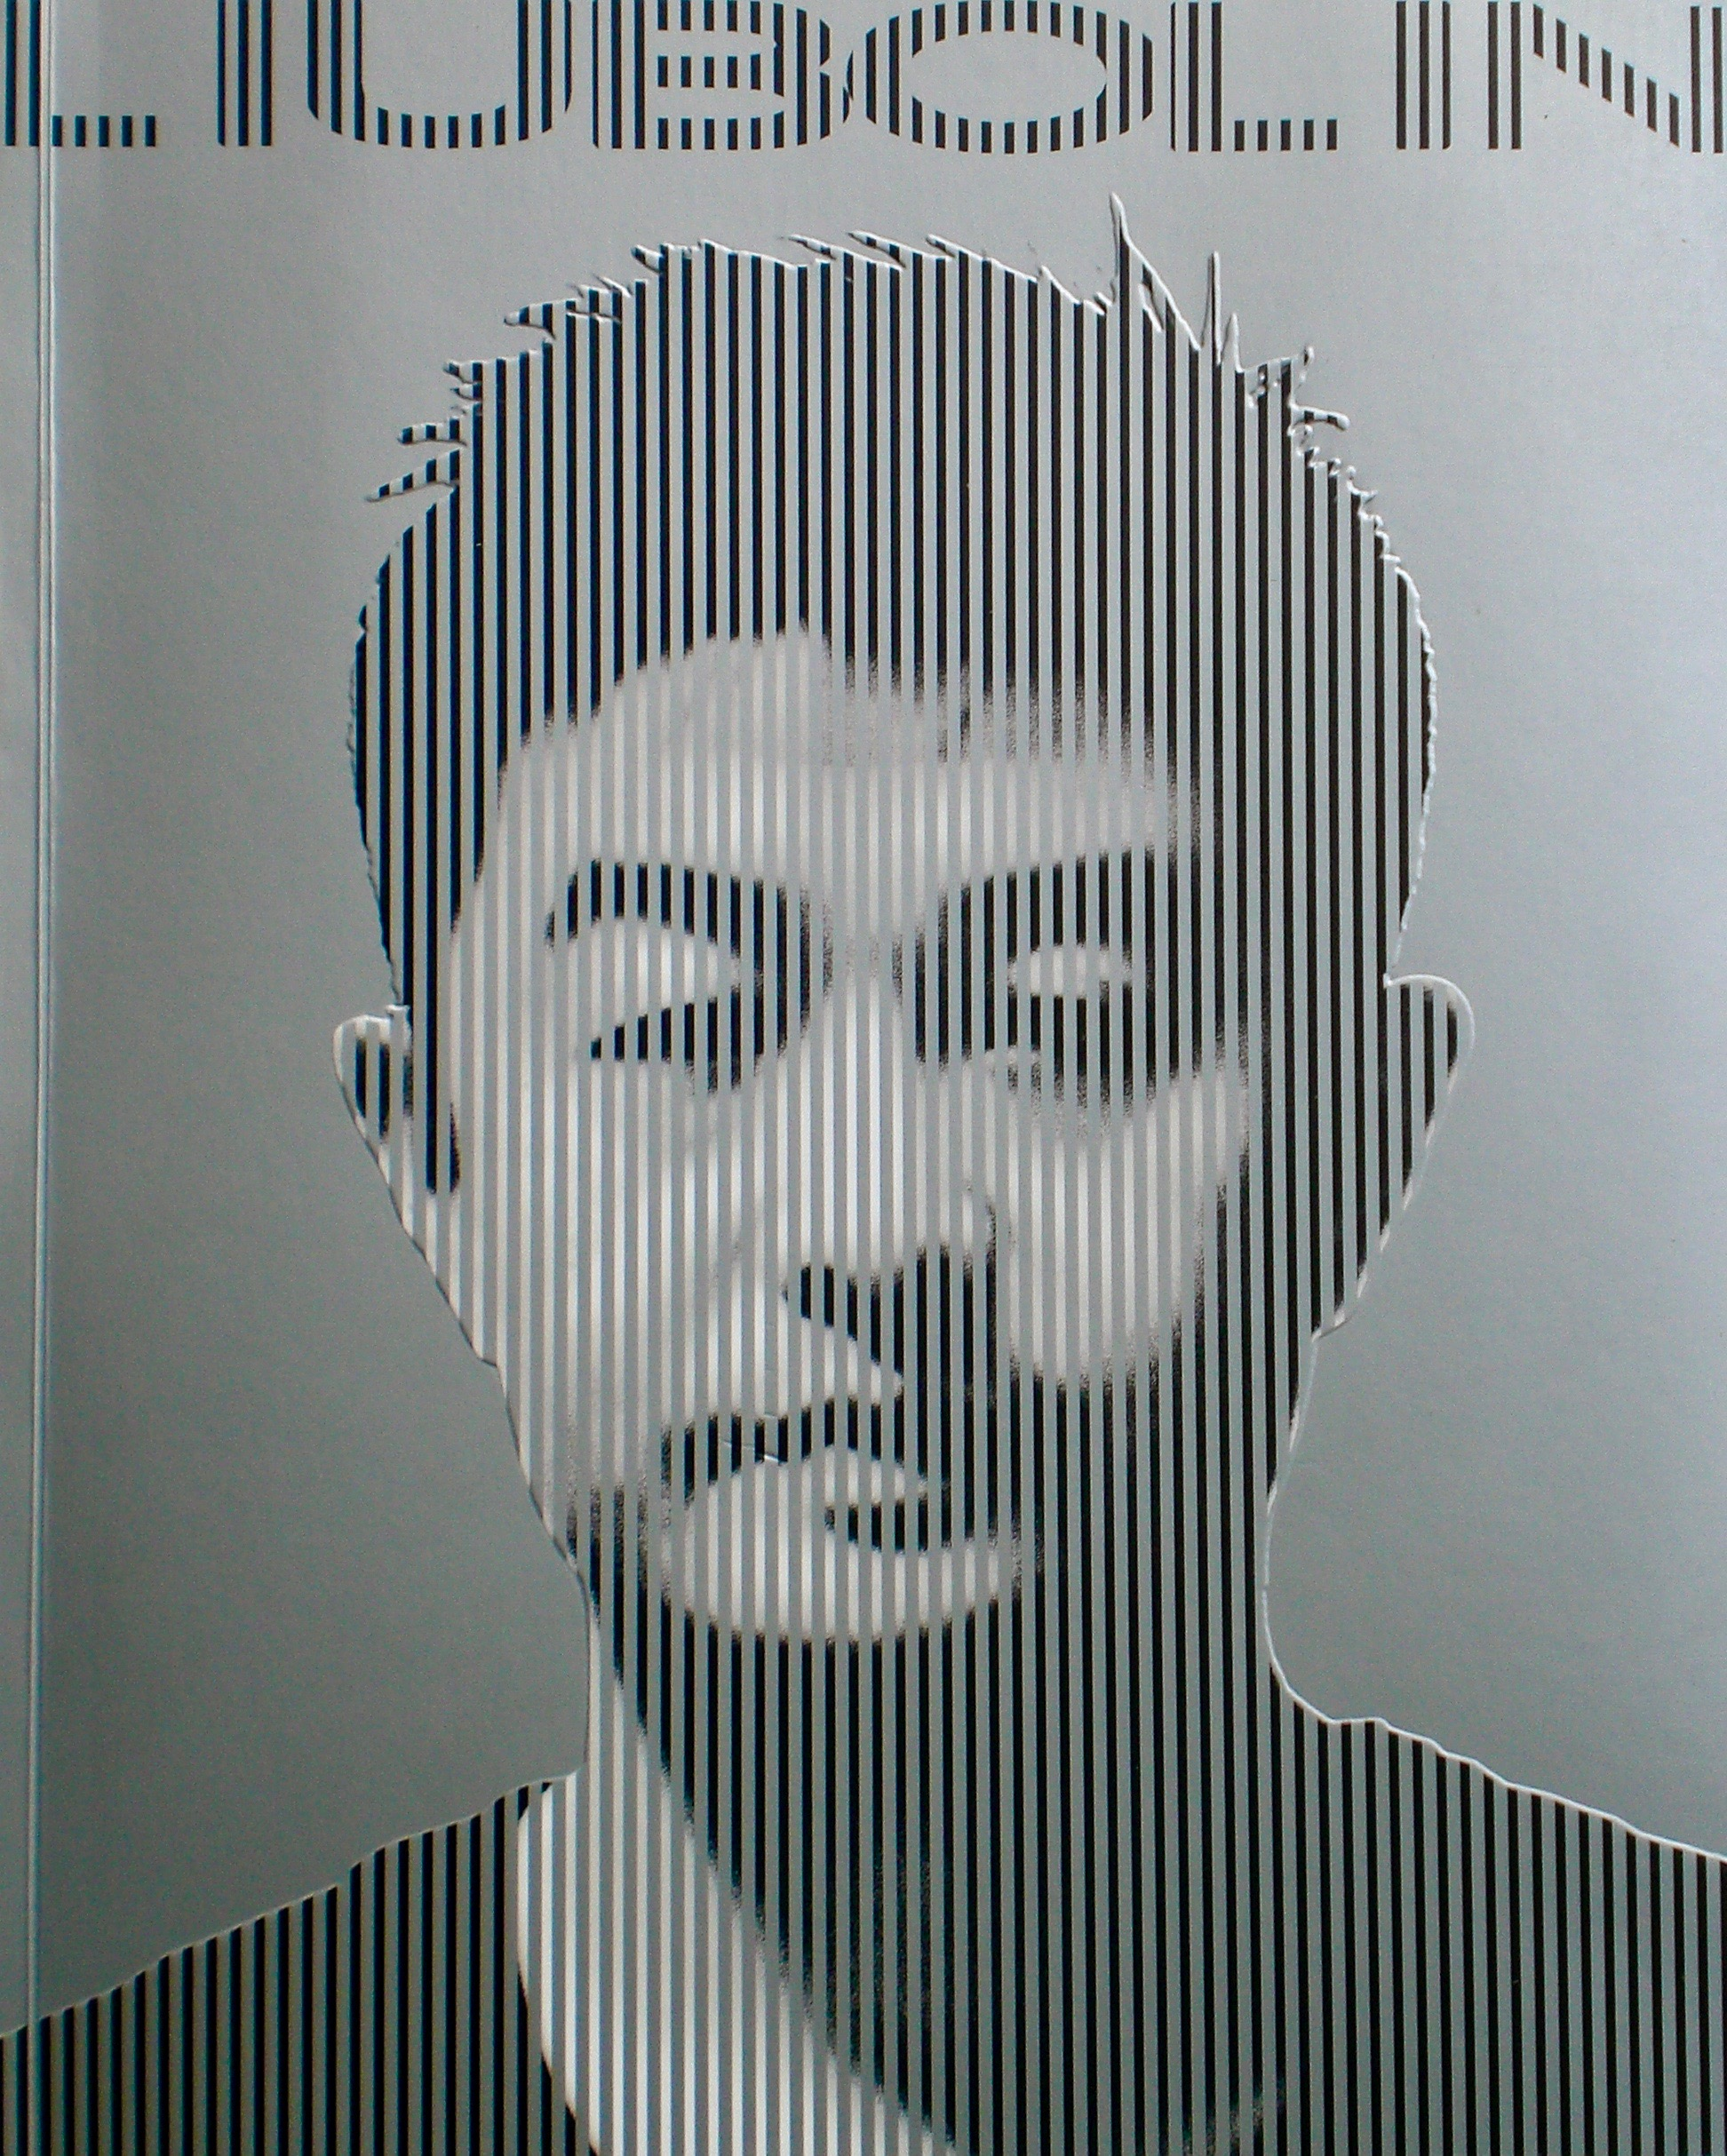 Cover of a 2008 book containing Liu's work up to that year.